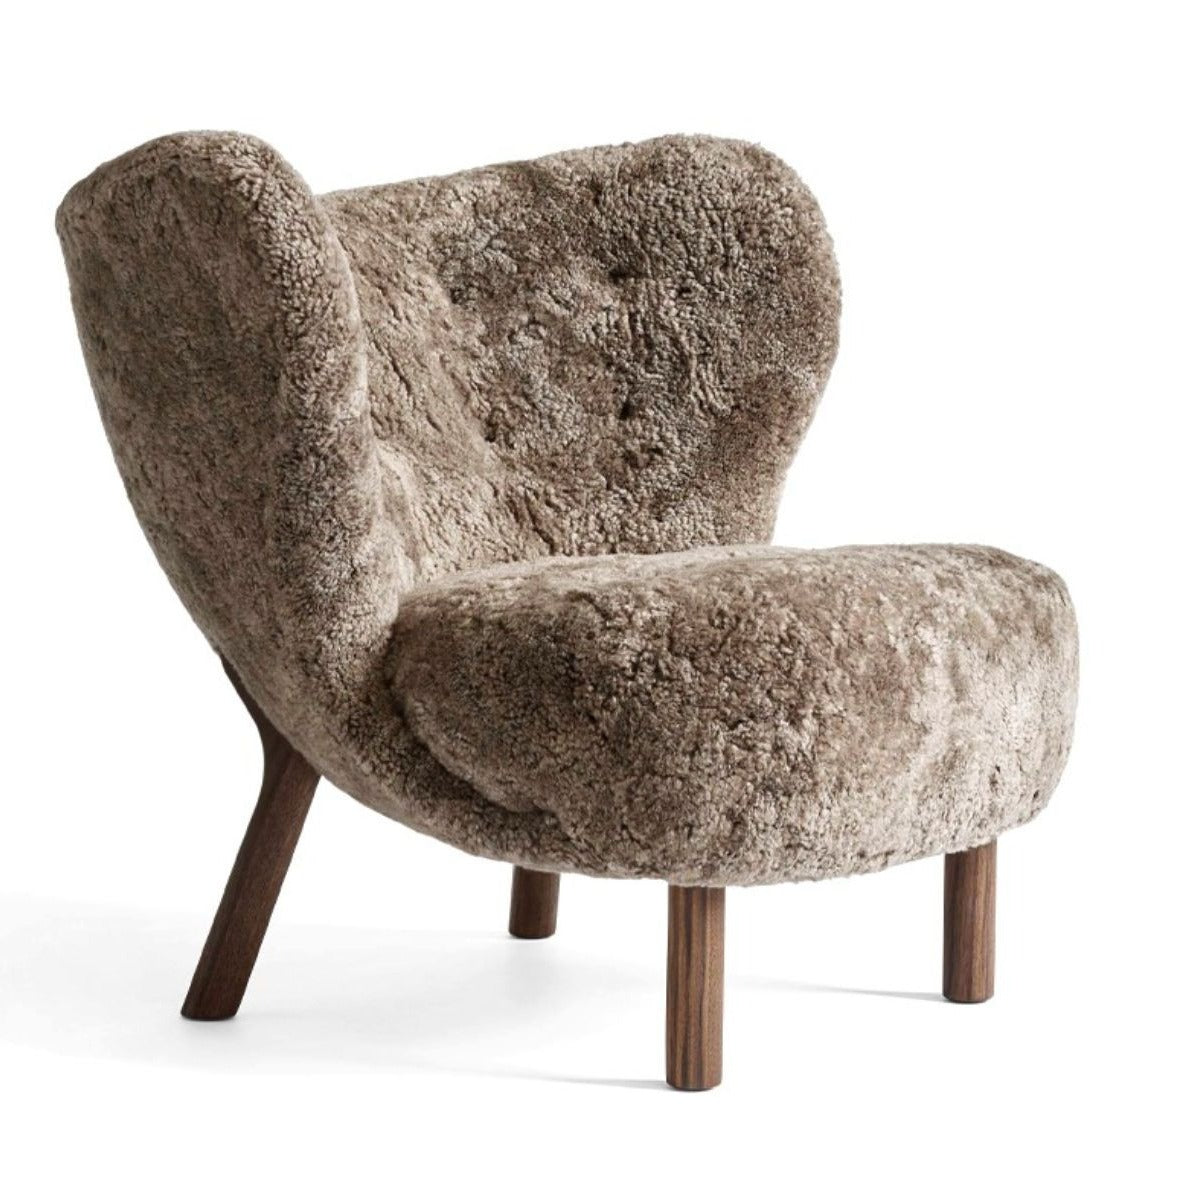 &Tradition Little Petra VB1 lounge chair, sheepskin 17mm sahara